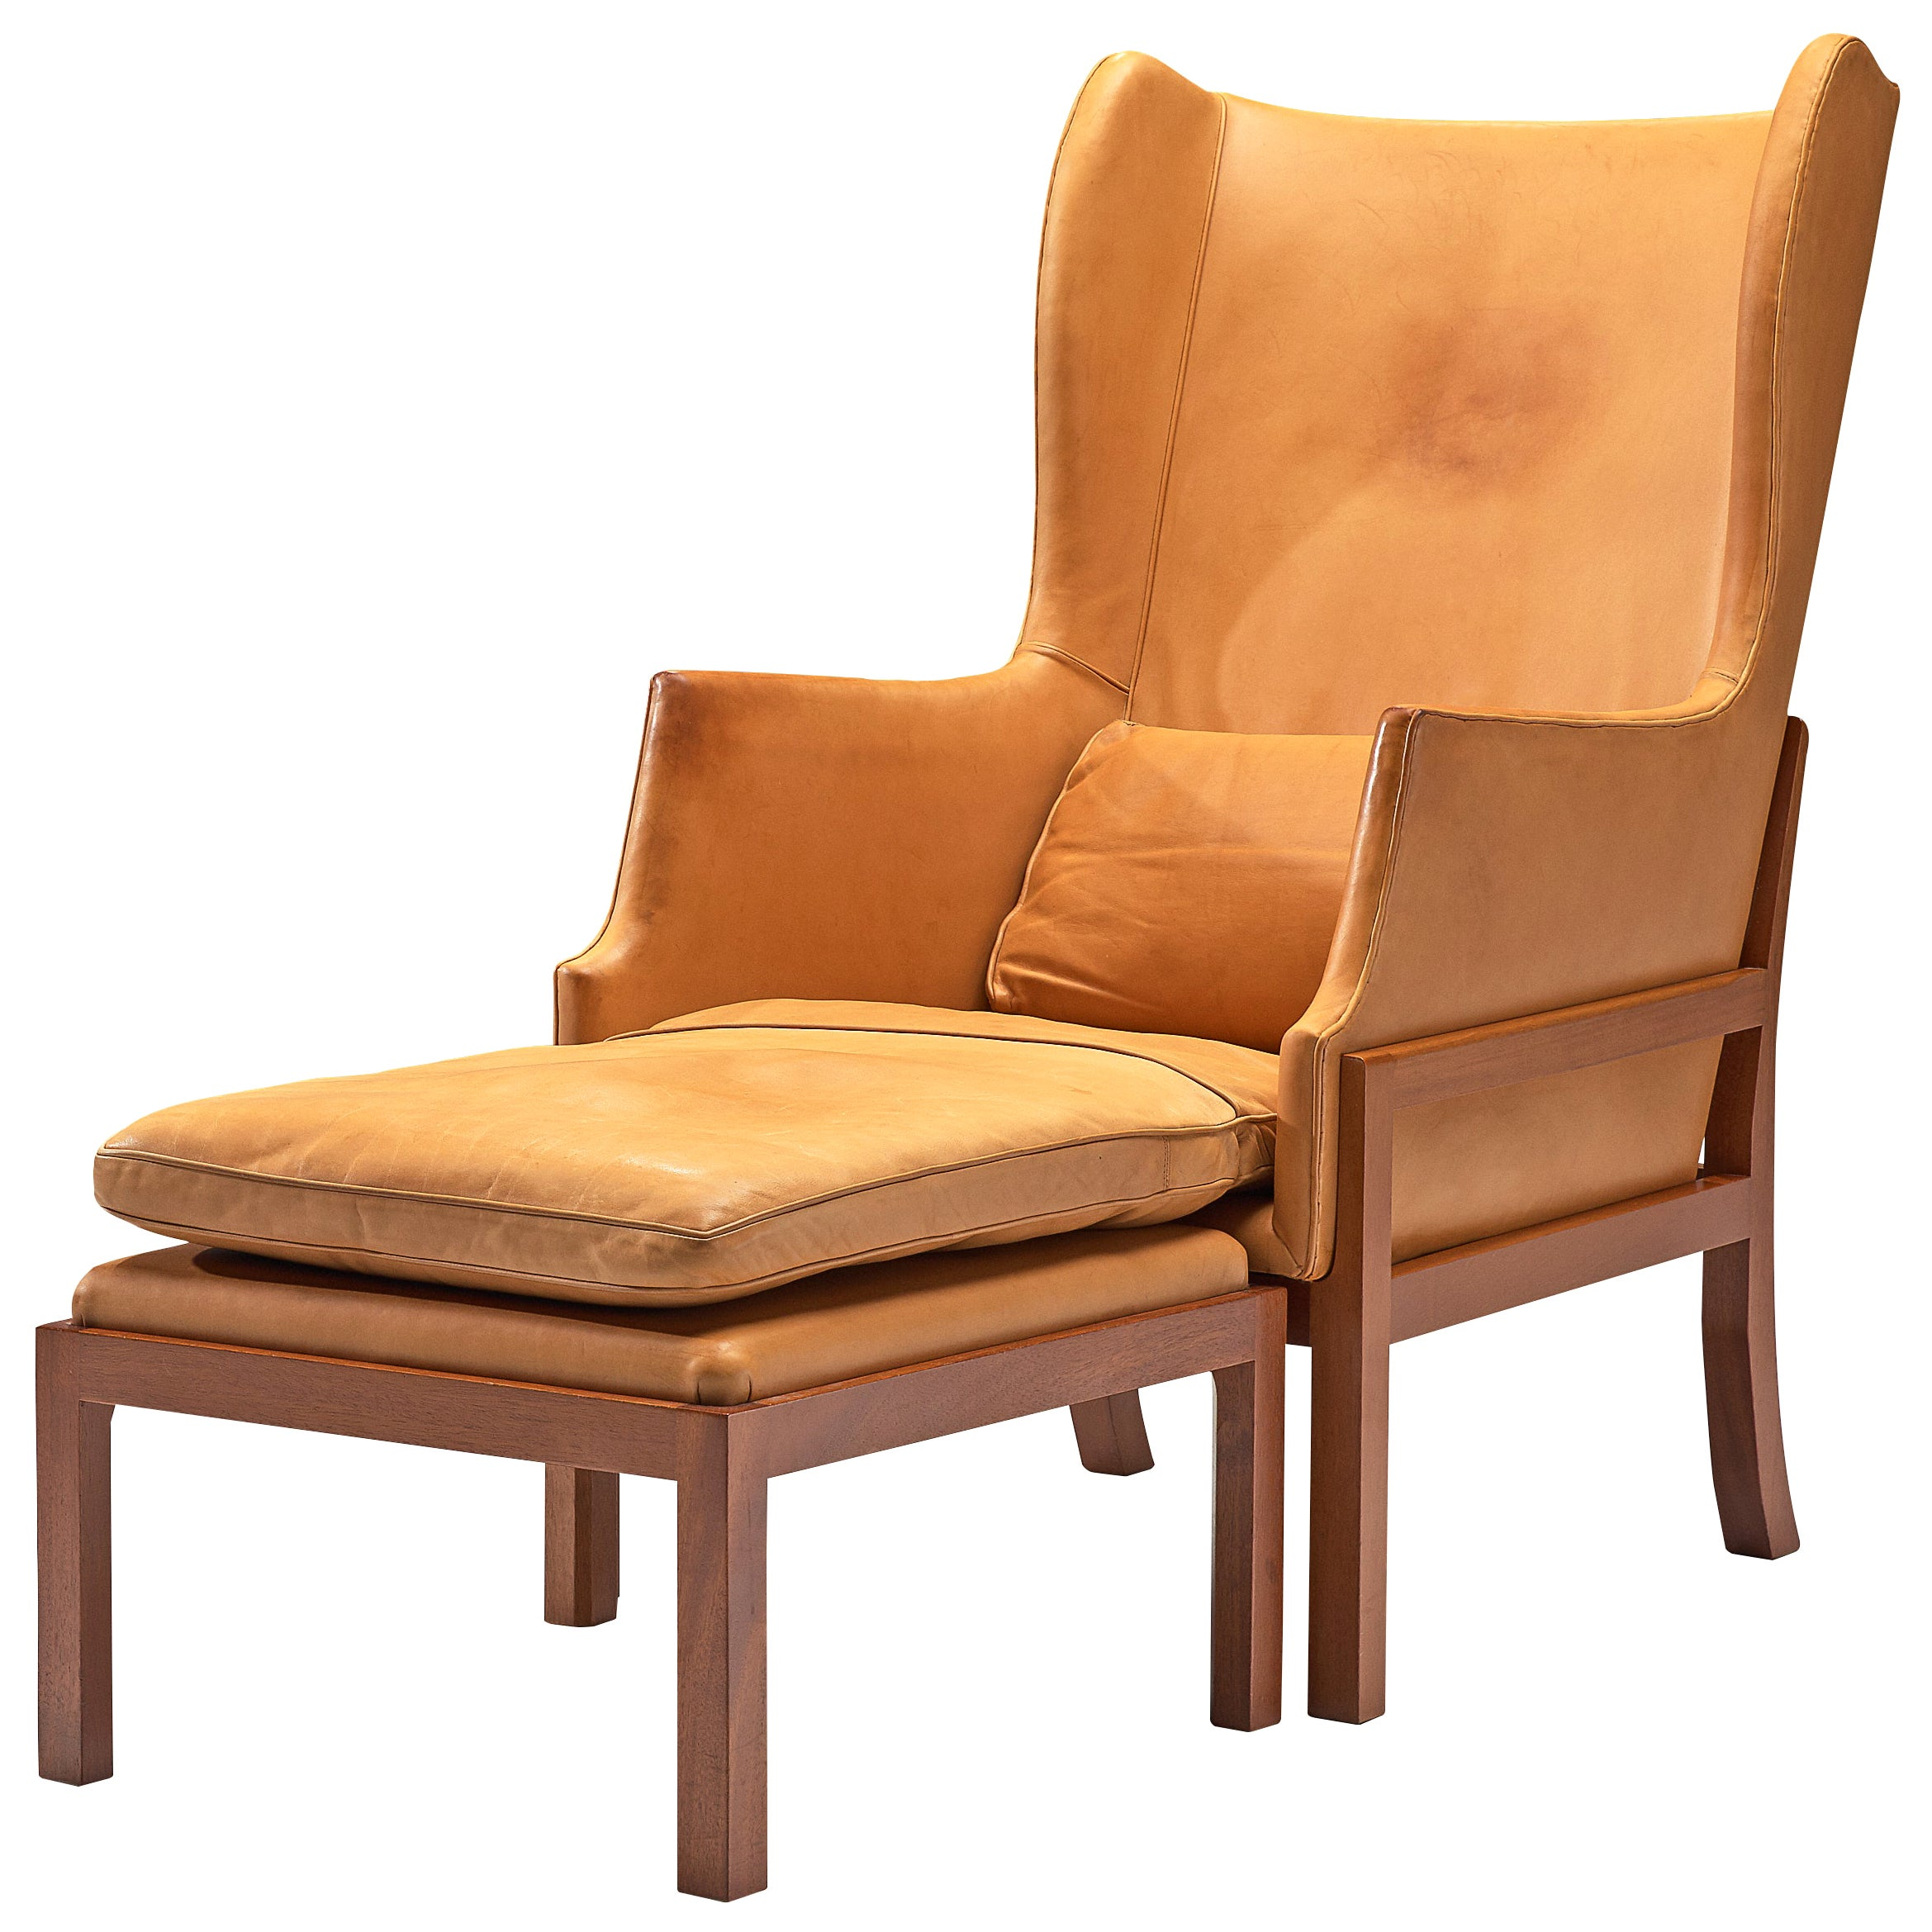 Mogens Koch Wingback Lounge Chair and Ottoman in Cognac Leather